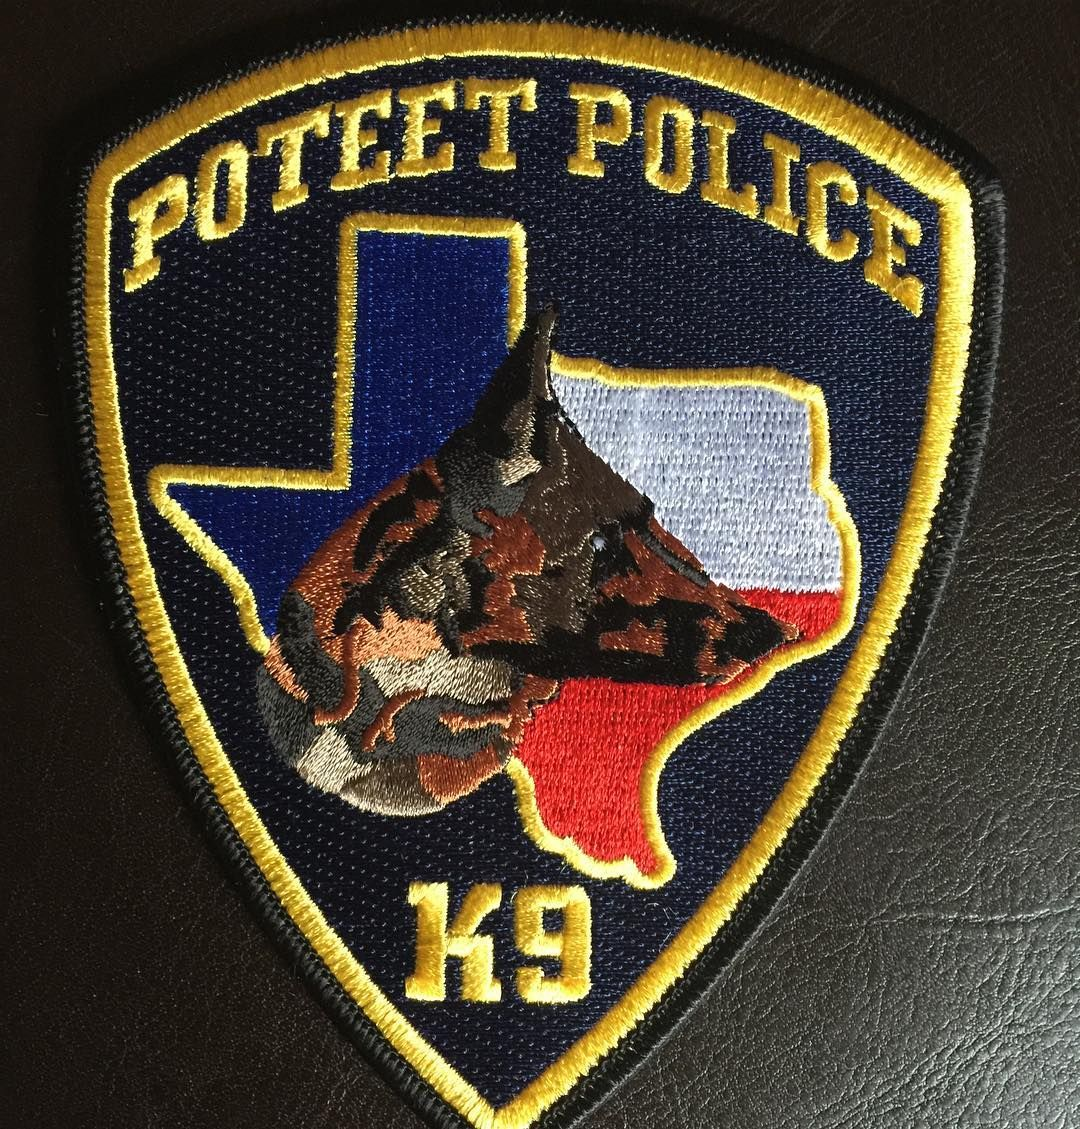 #poteet #poteetpolice #poteetk9 #poteetpolicek9 #policek9 #k9 #k9police #police #patch #policepatch by police_patch_collector